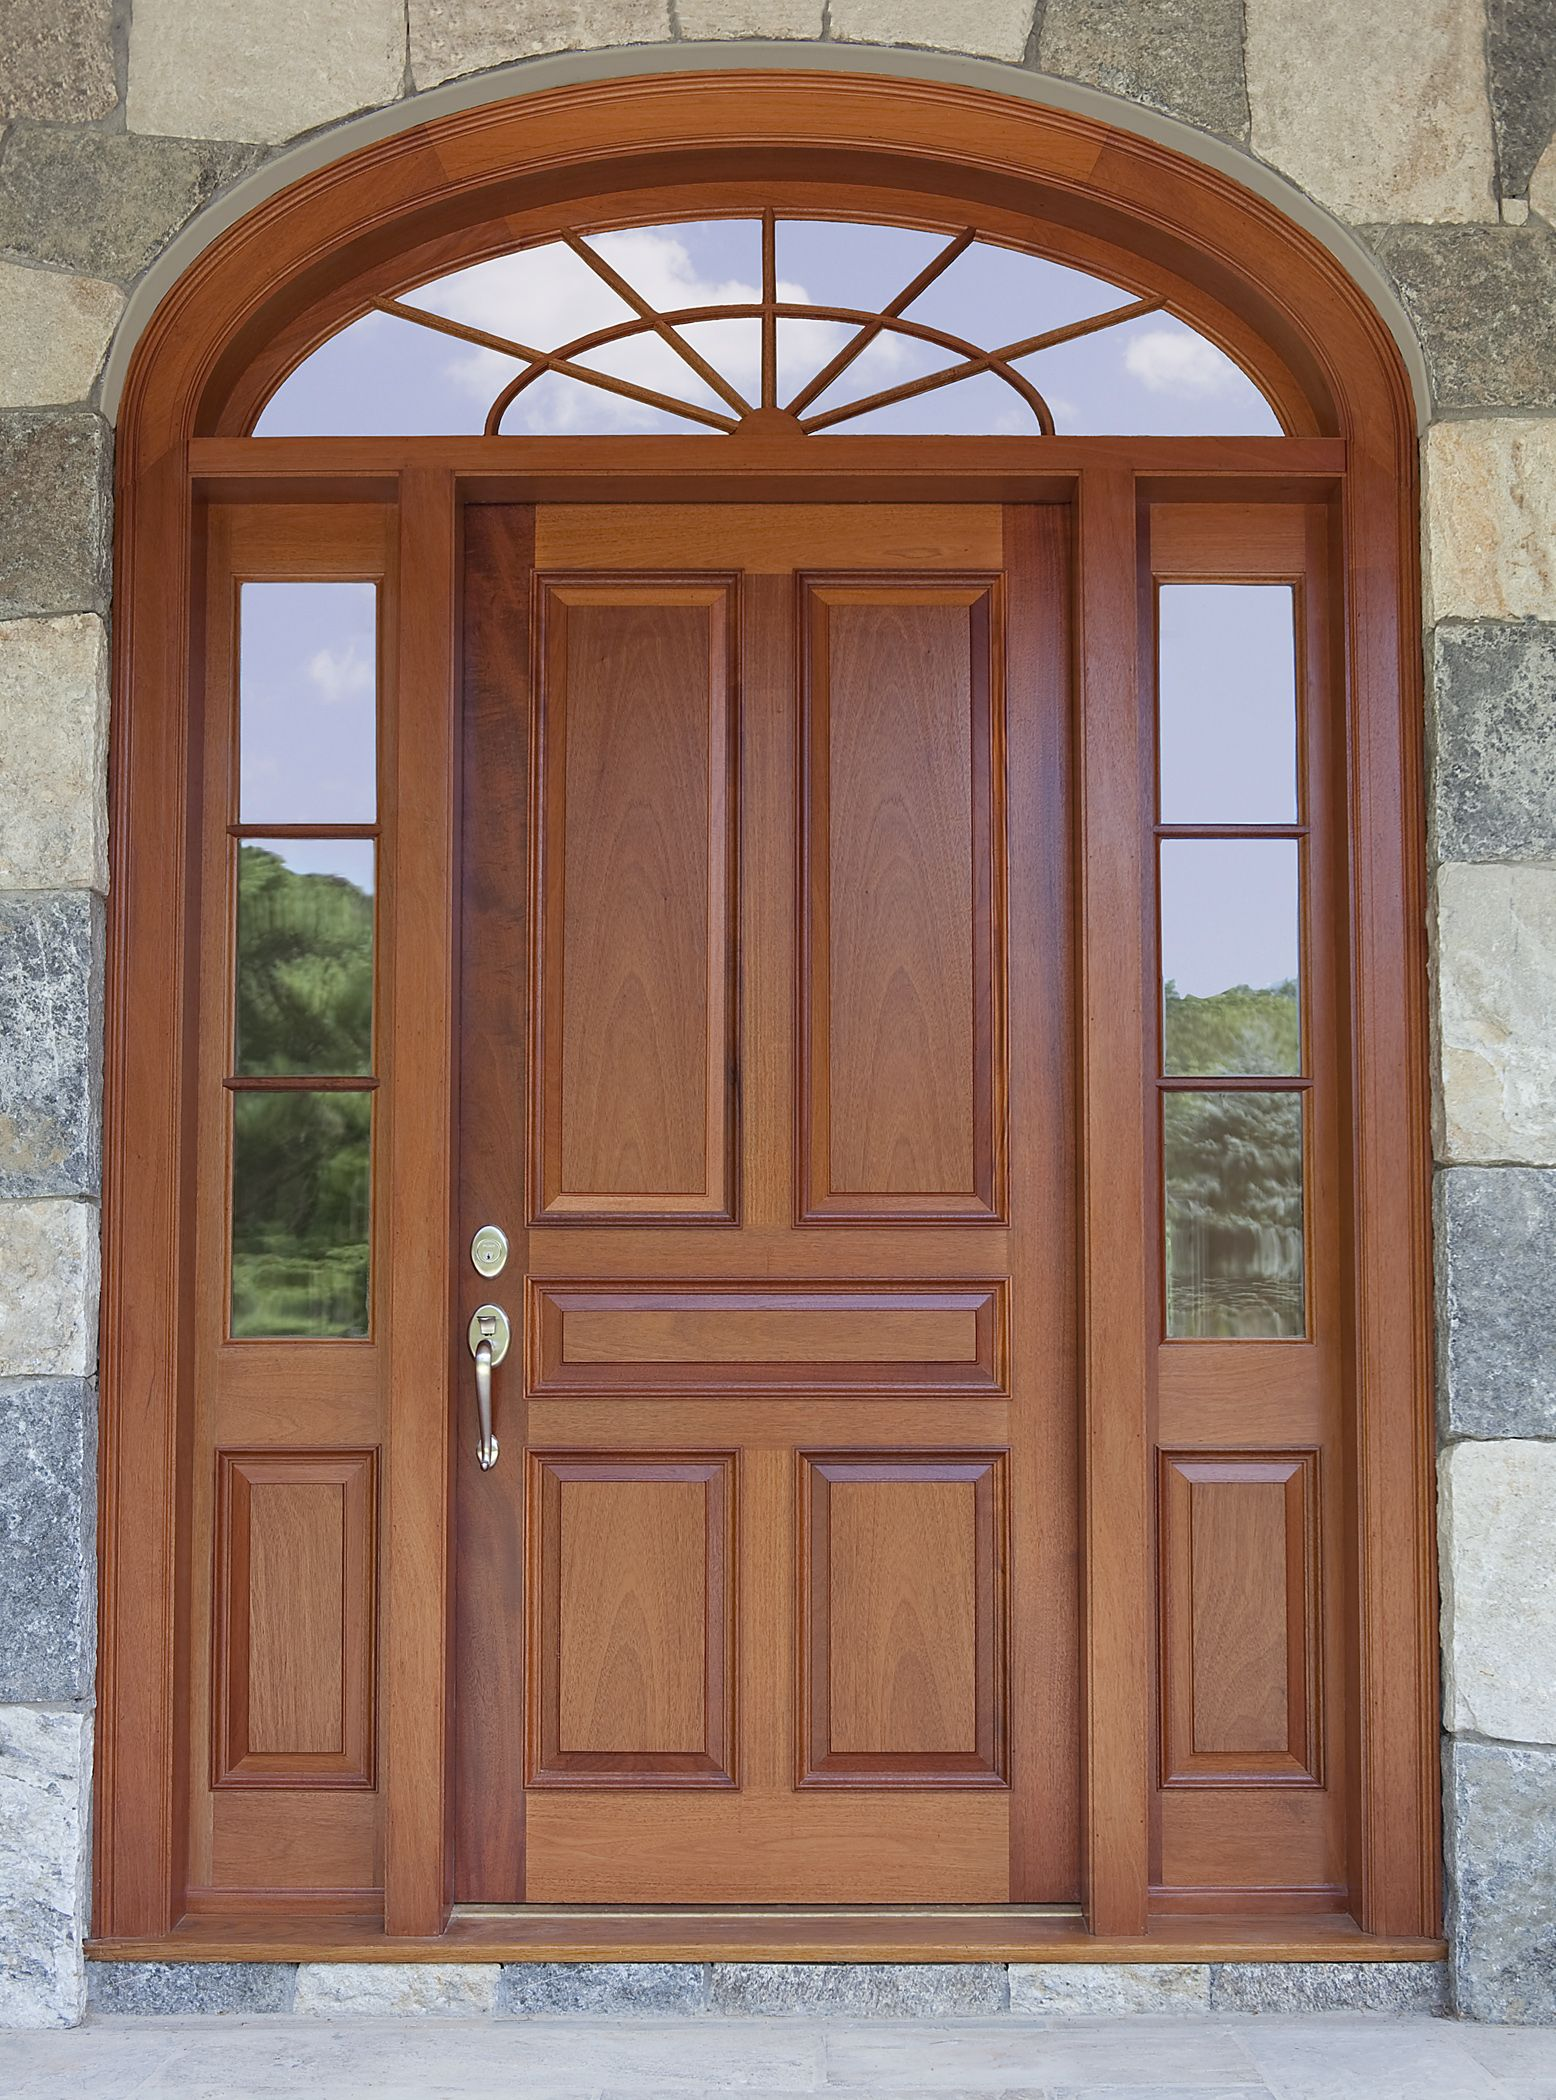 Just One Of Our Many Custom Exterior Doors You Imagine It We Build It Front Door Design Wooden Door Design Custom Exterior Doors